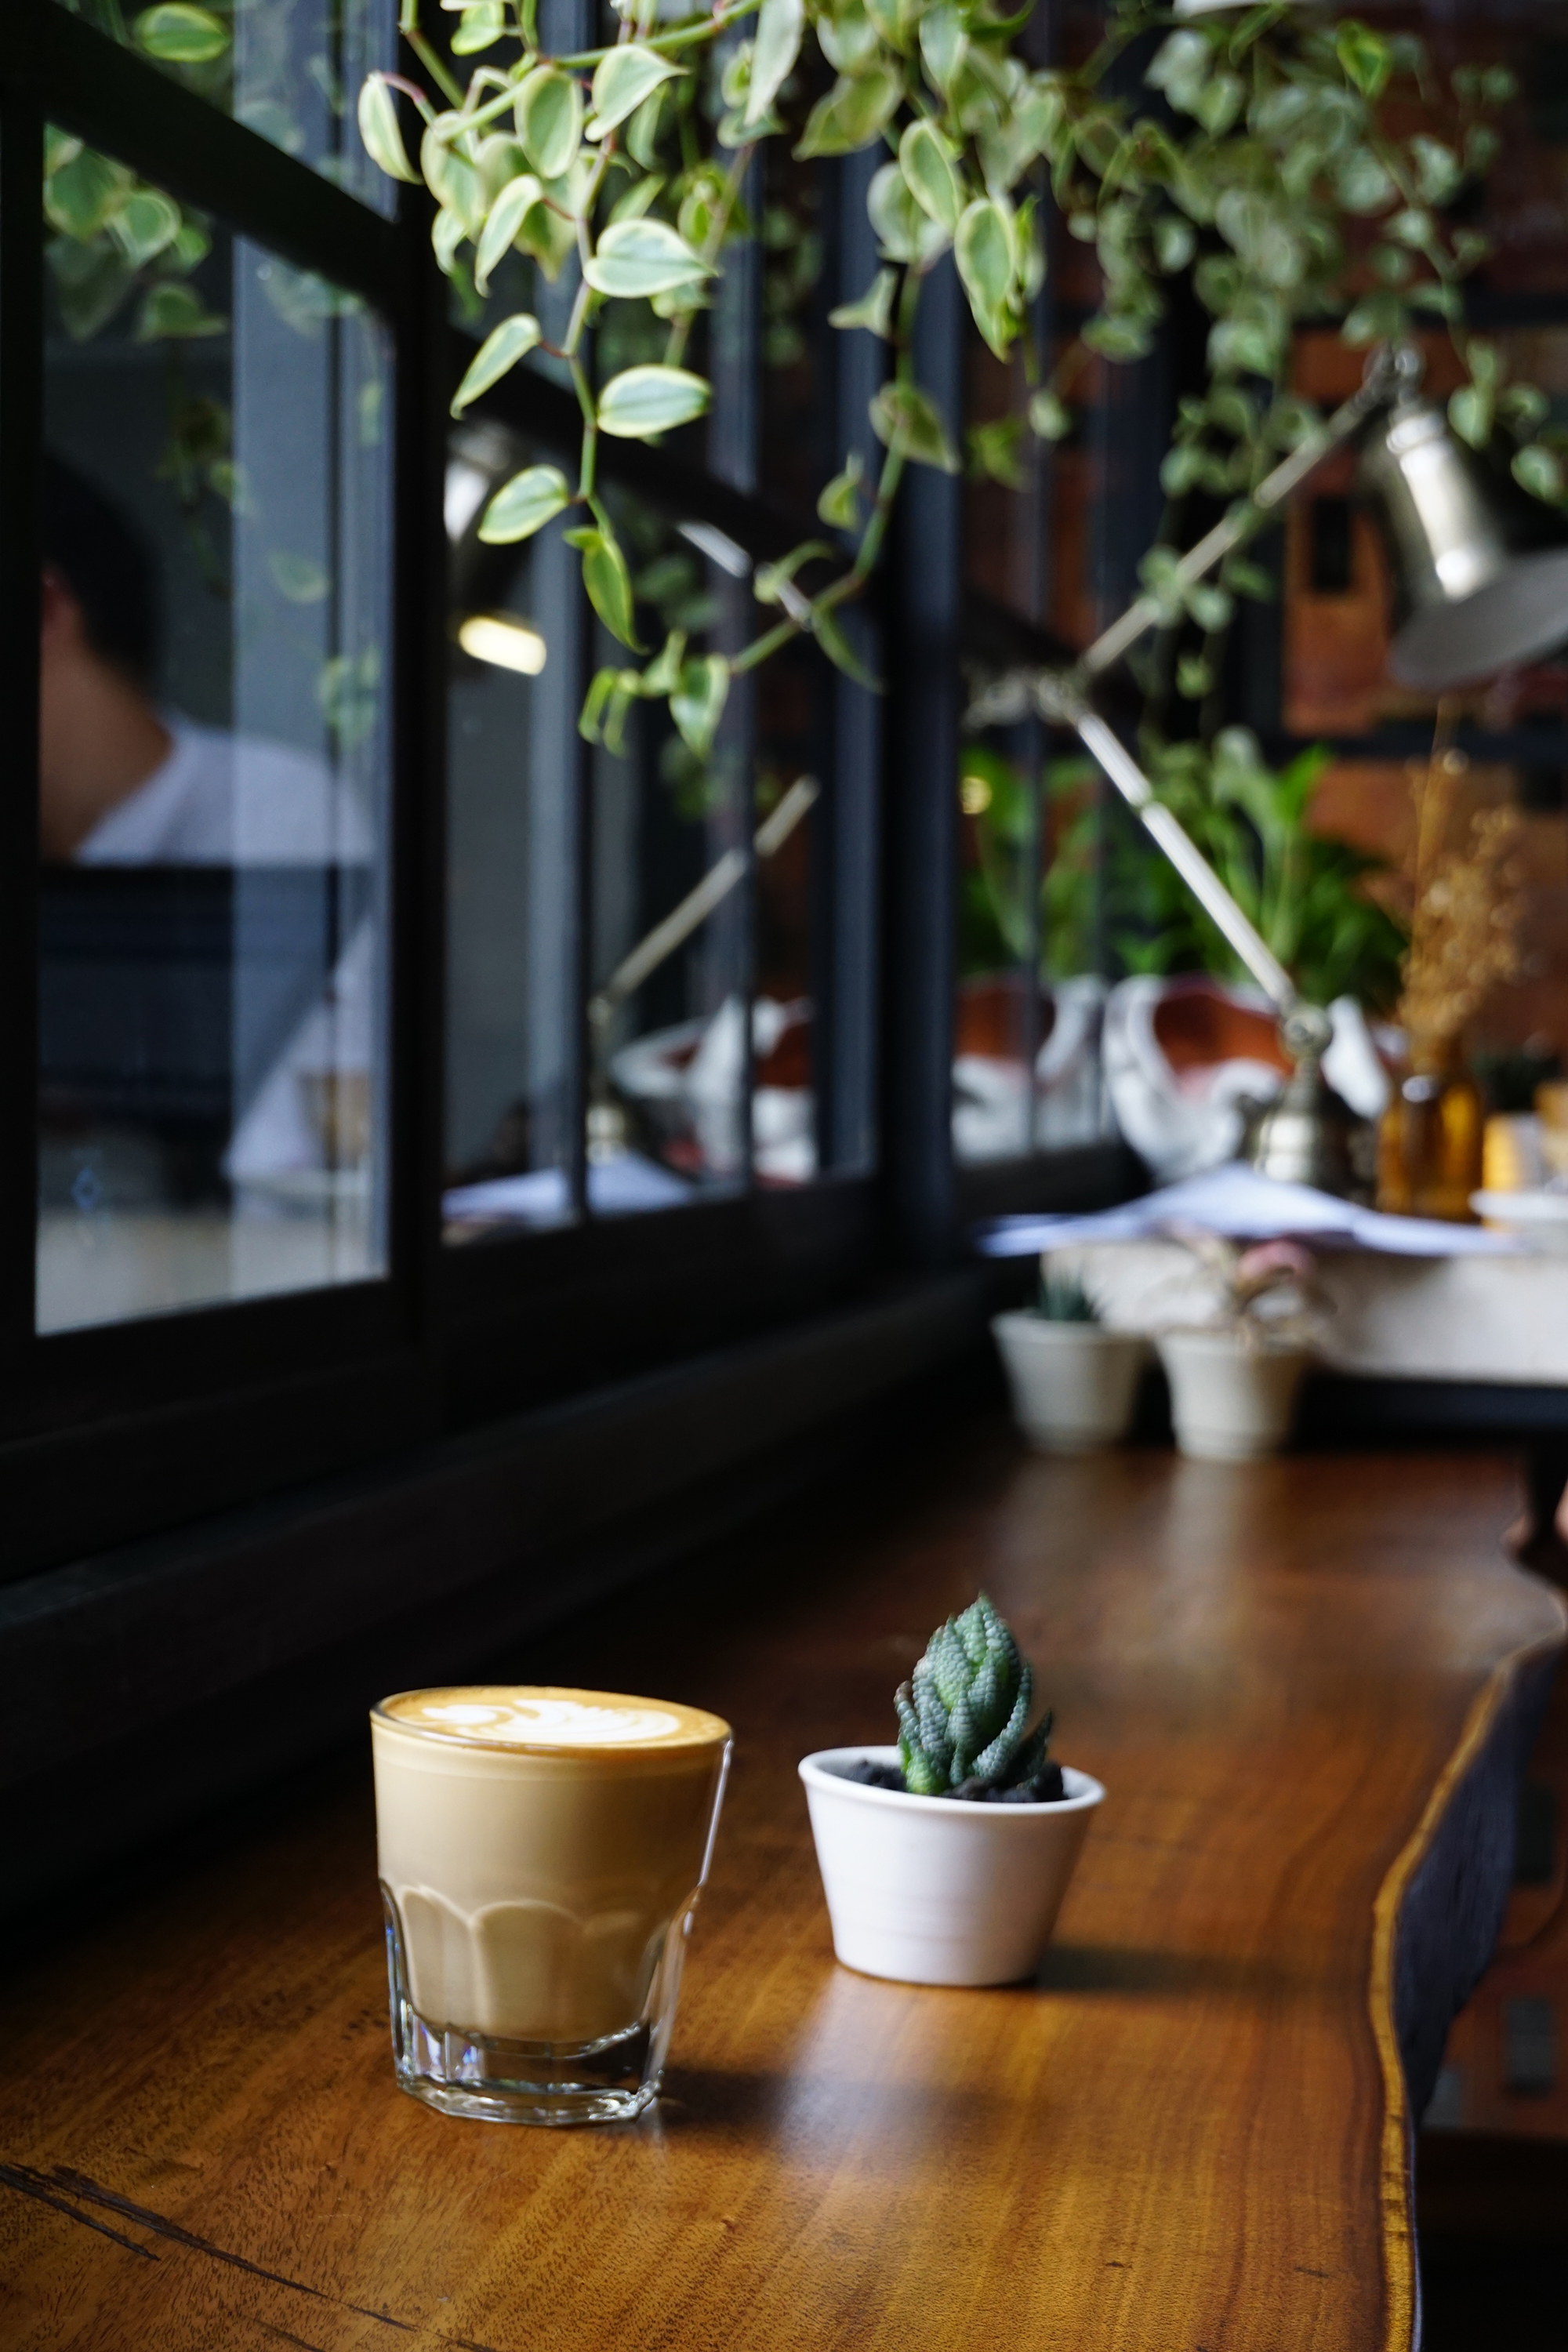 Coffee & Plants are a perfect match… - Did you know businesses with plants attract up to 42% more customers? We might have made that statistic up but there is definitely some truth to it! Plants add a lush, comfortable vibe to a business that makes customers feel welcome and stick around longer.Let's talk about adding some plants to your business, we can even take care of them for you.Message us today for a FREE Consult.